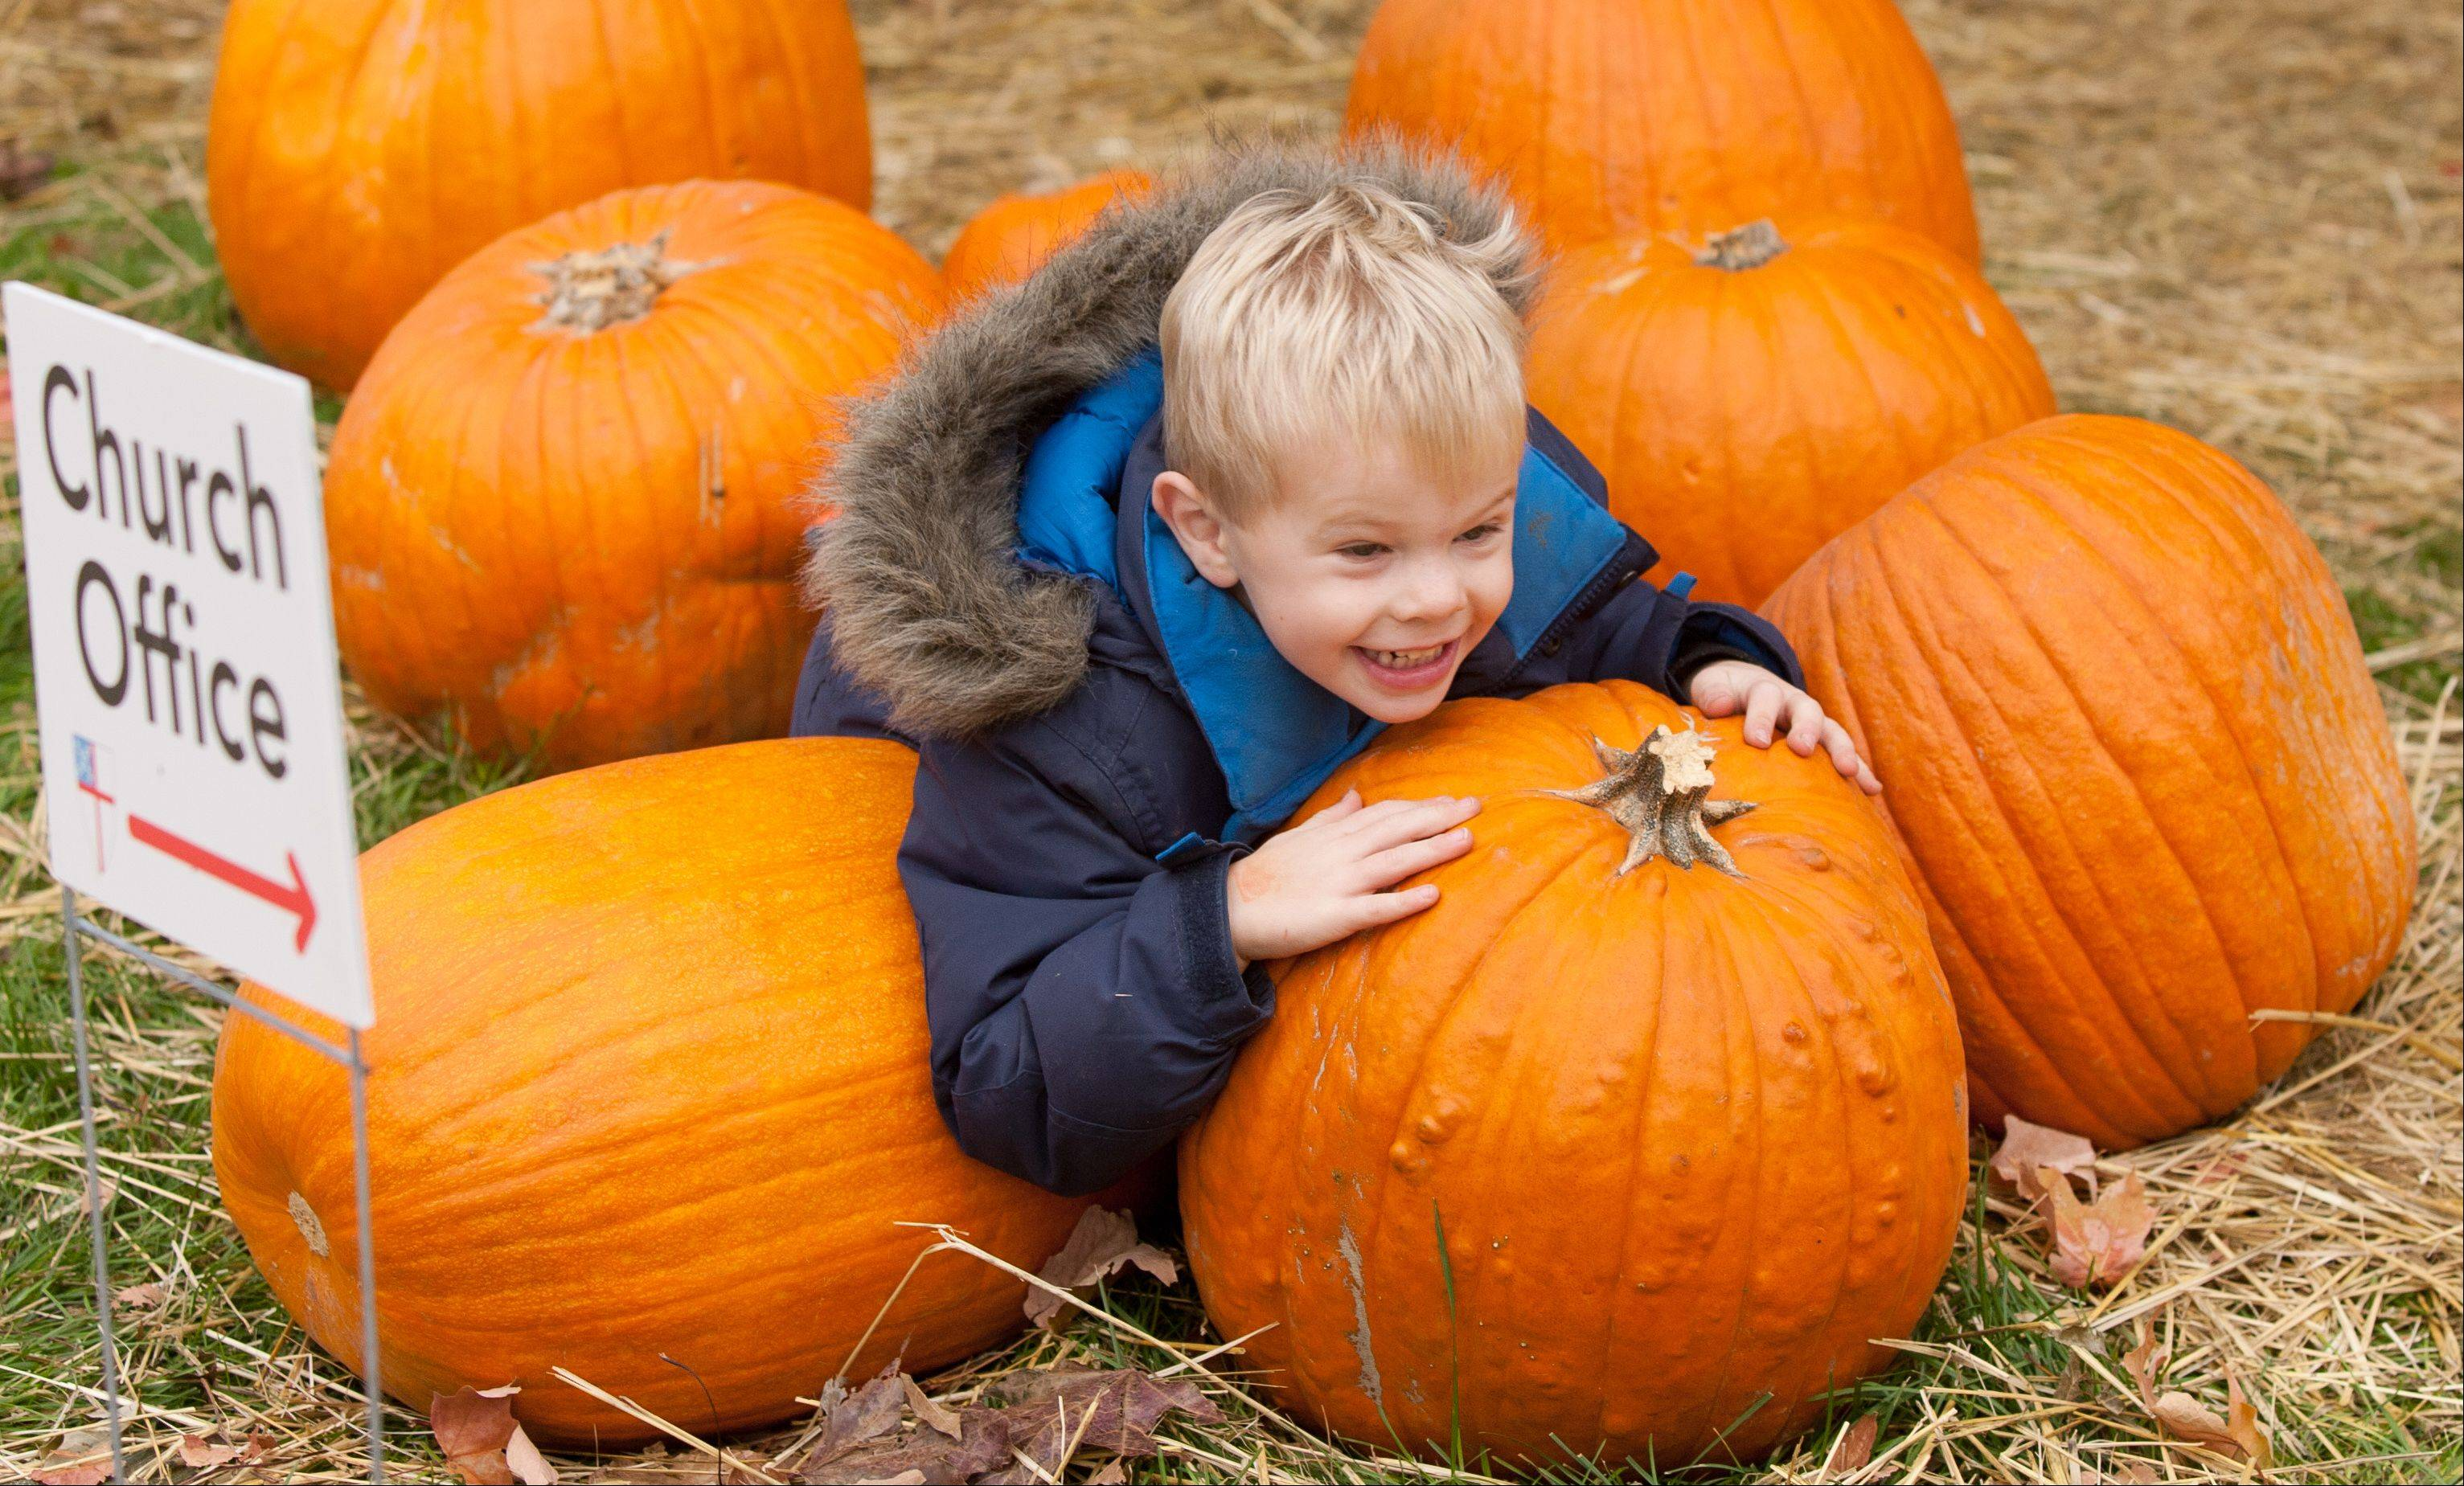 "St. Mark's Episcopal Church preschooler Elliot Dupuy plays in a pumpkin patch Wednesday on the church grounds in Glen Ellyn. The annual pumpkin sale raises money to fight homelessness and the patch also serves as an extension of indoor classrooms. ""When we come out here, sometimes we bring our journals and draw what we see in the pumpkin patch,"" preschool teacher Beth Figler said. ""Then we go back inside to write and talk about our experiences."""